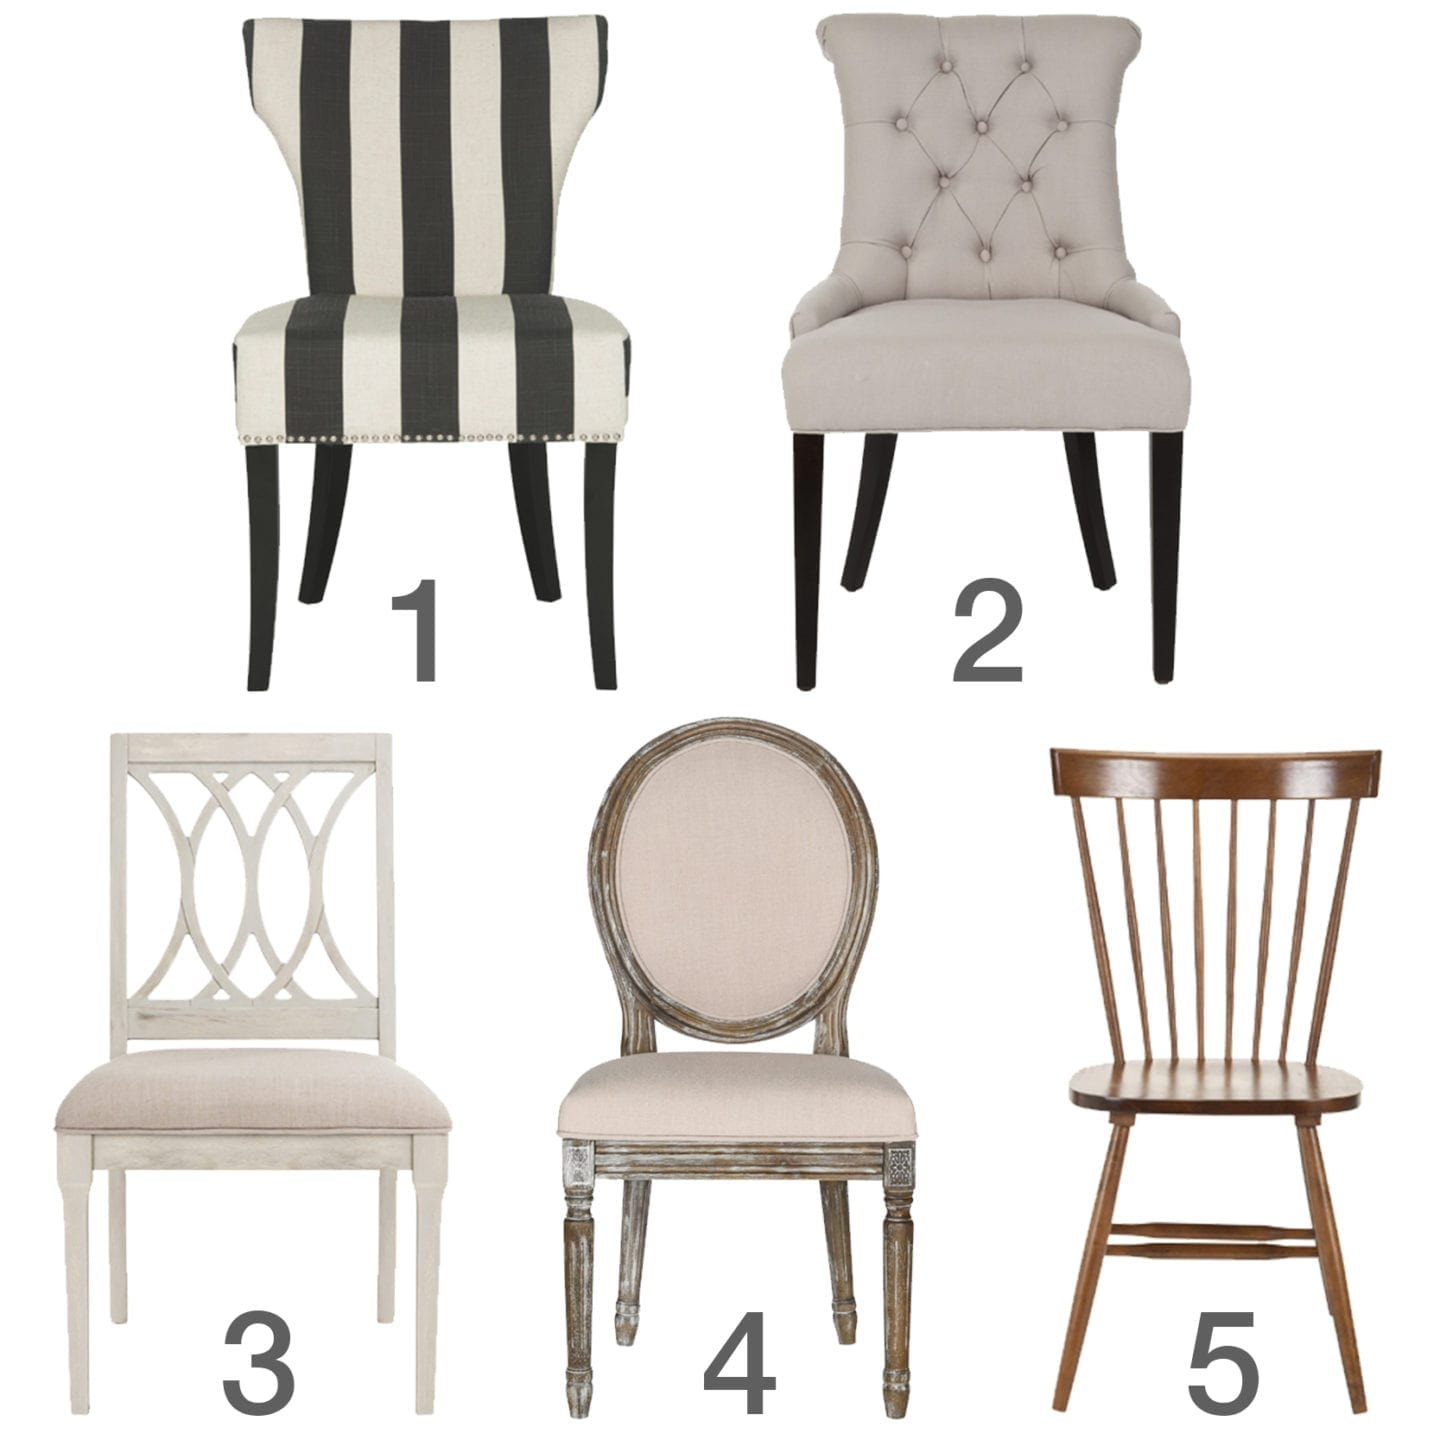 Styles Of Chairs How To Pick The Best Dining Chair For Your Dining Room Overstock